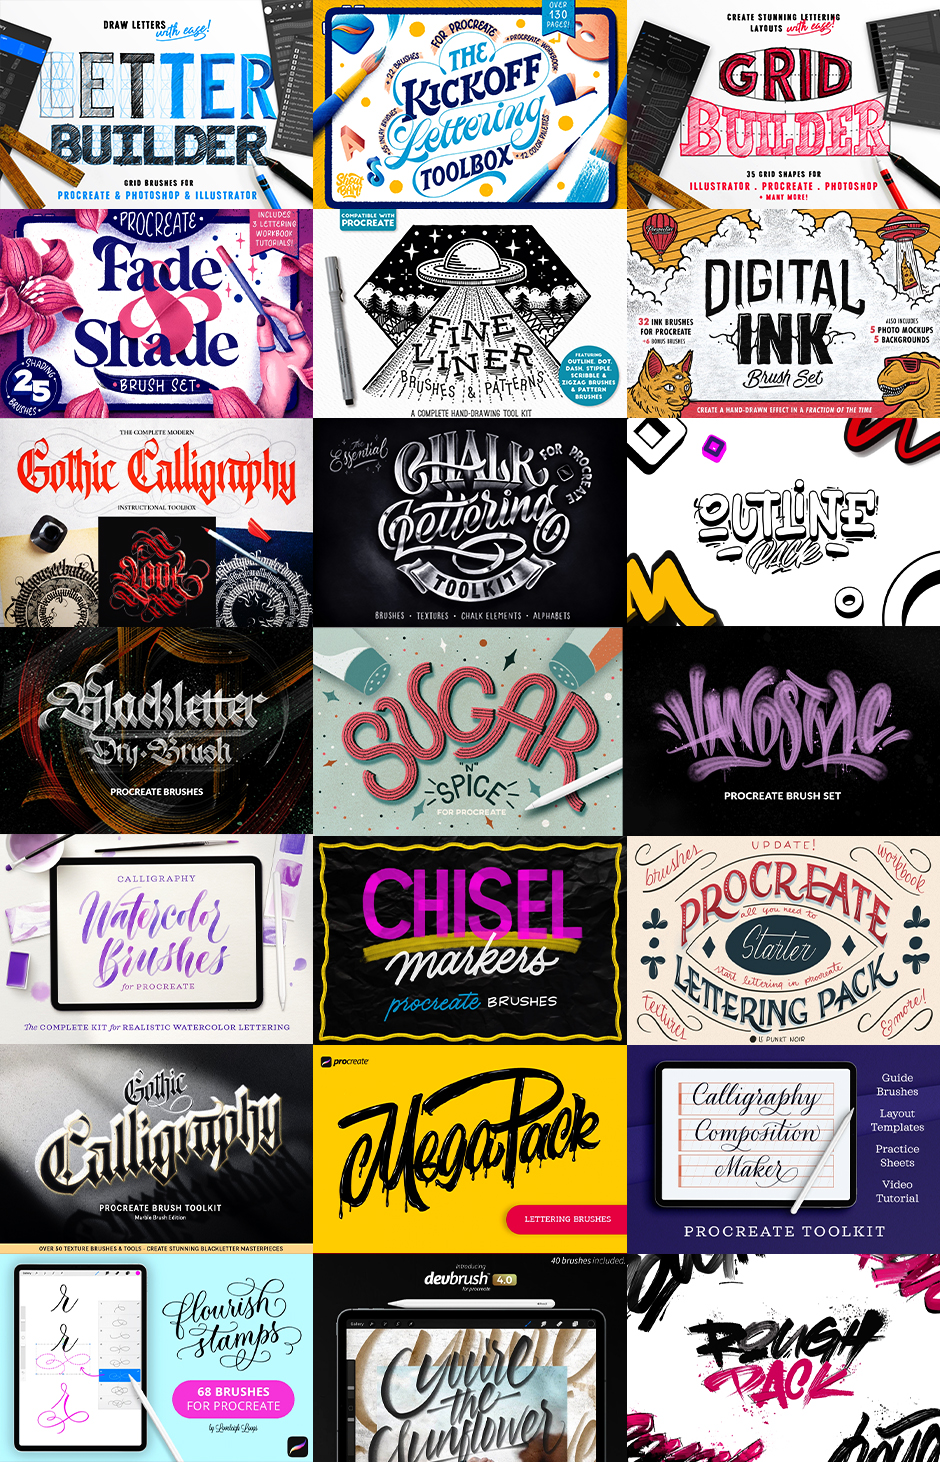 Lettering-Daily: The Colossal Procreate Brush Bundle